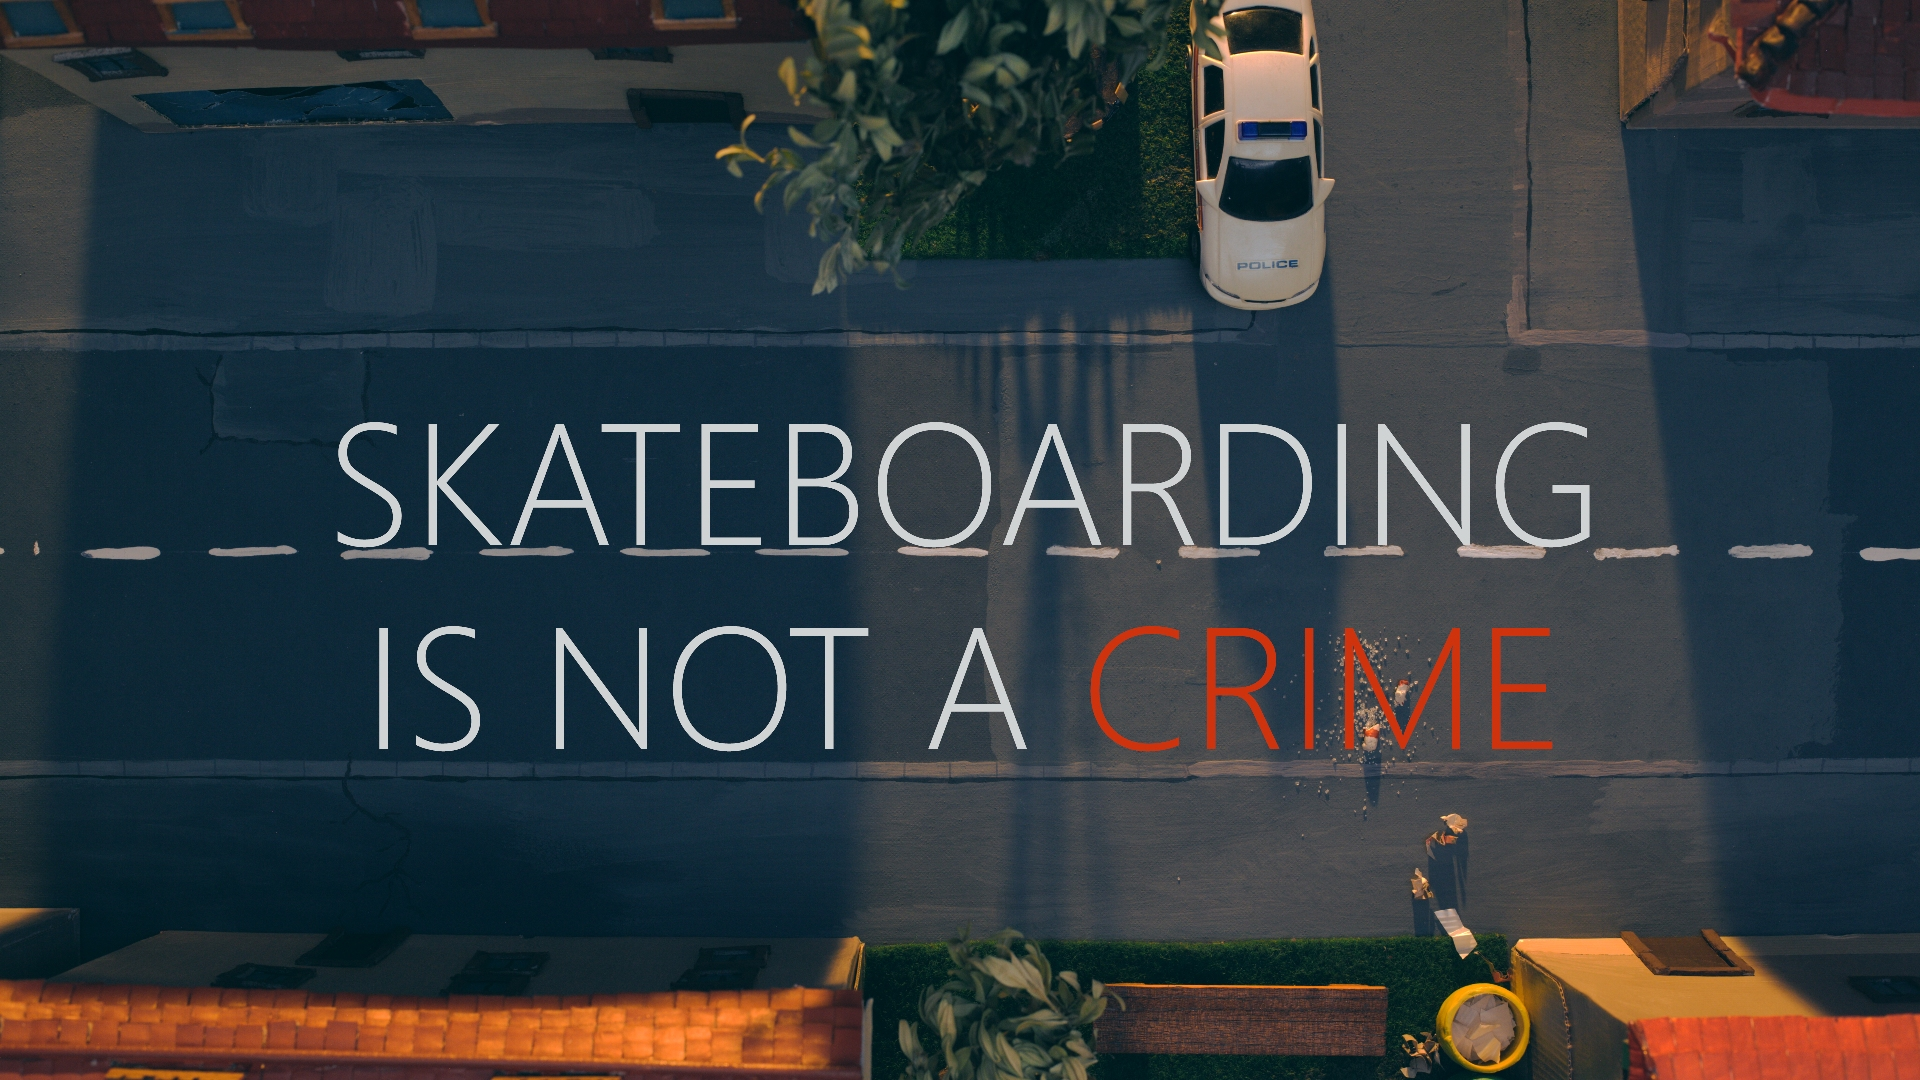 Skateboarding Is Not a Crime (2016) - Photo